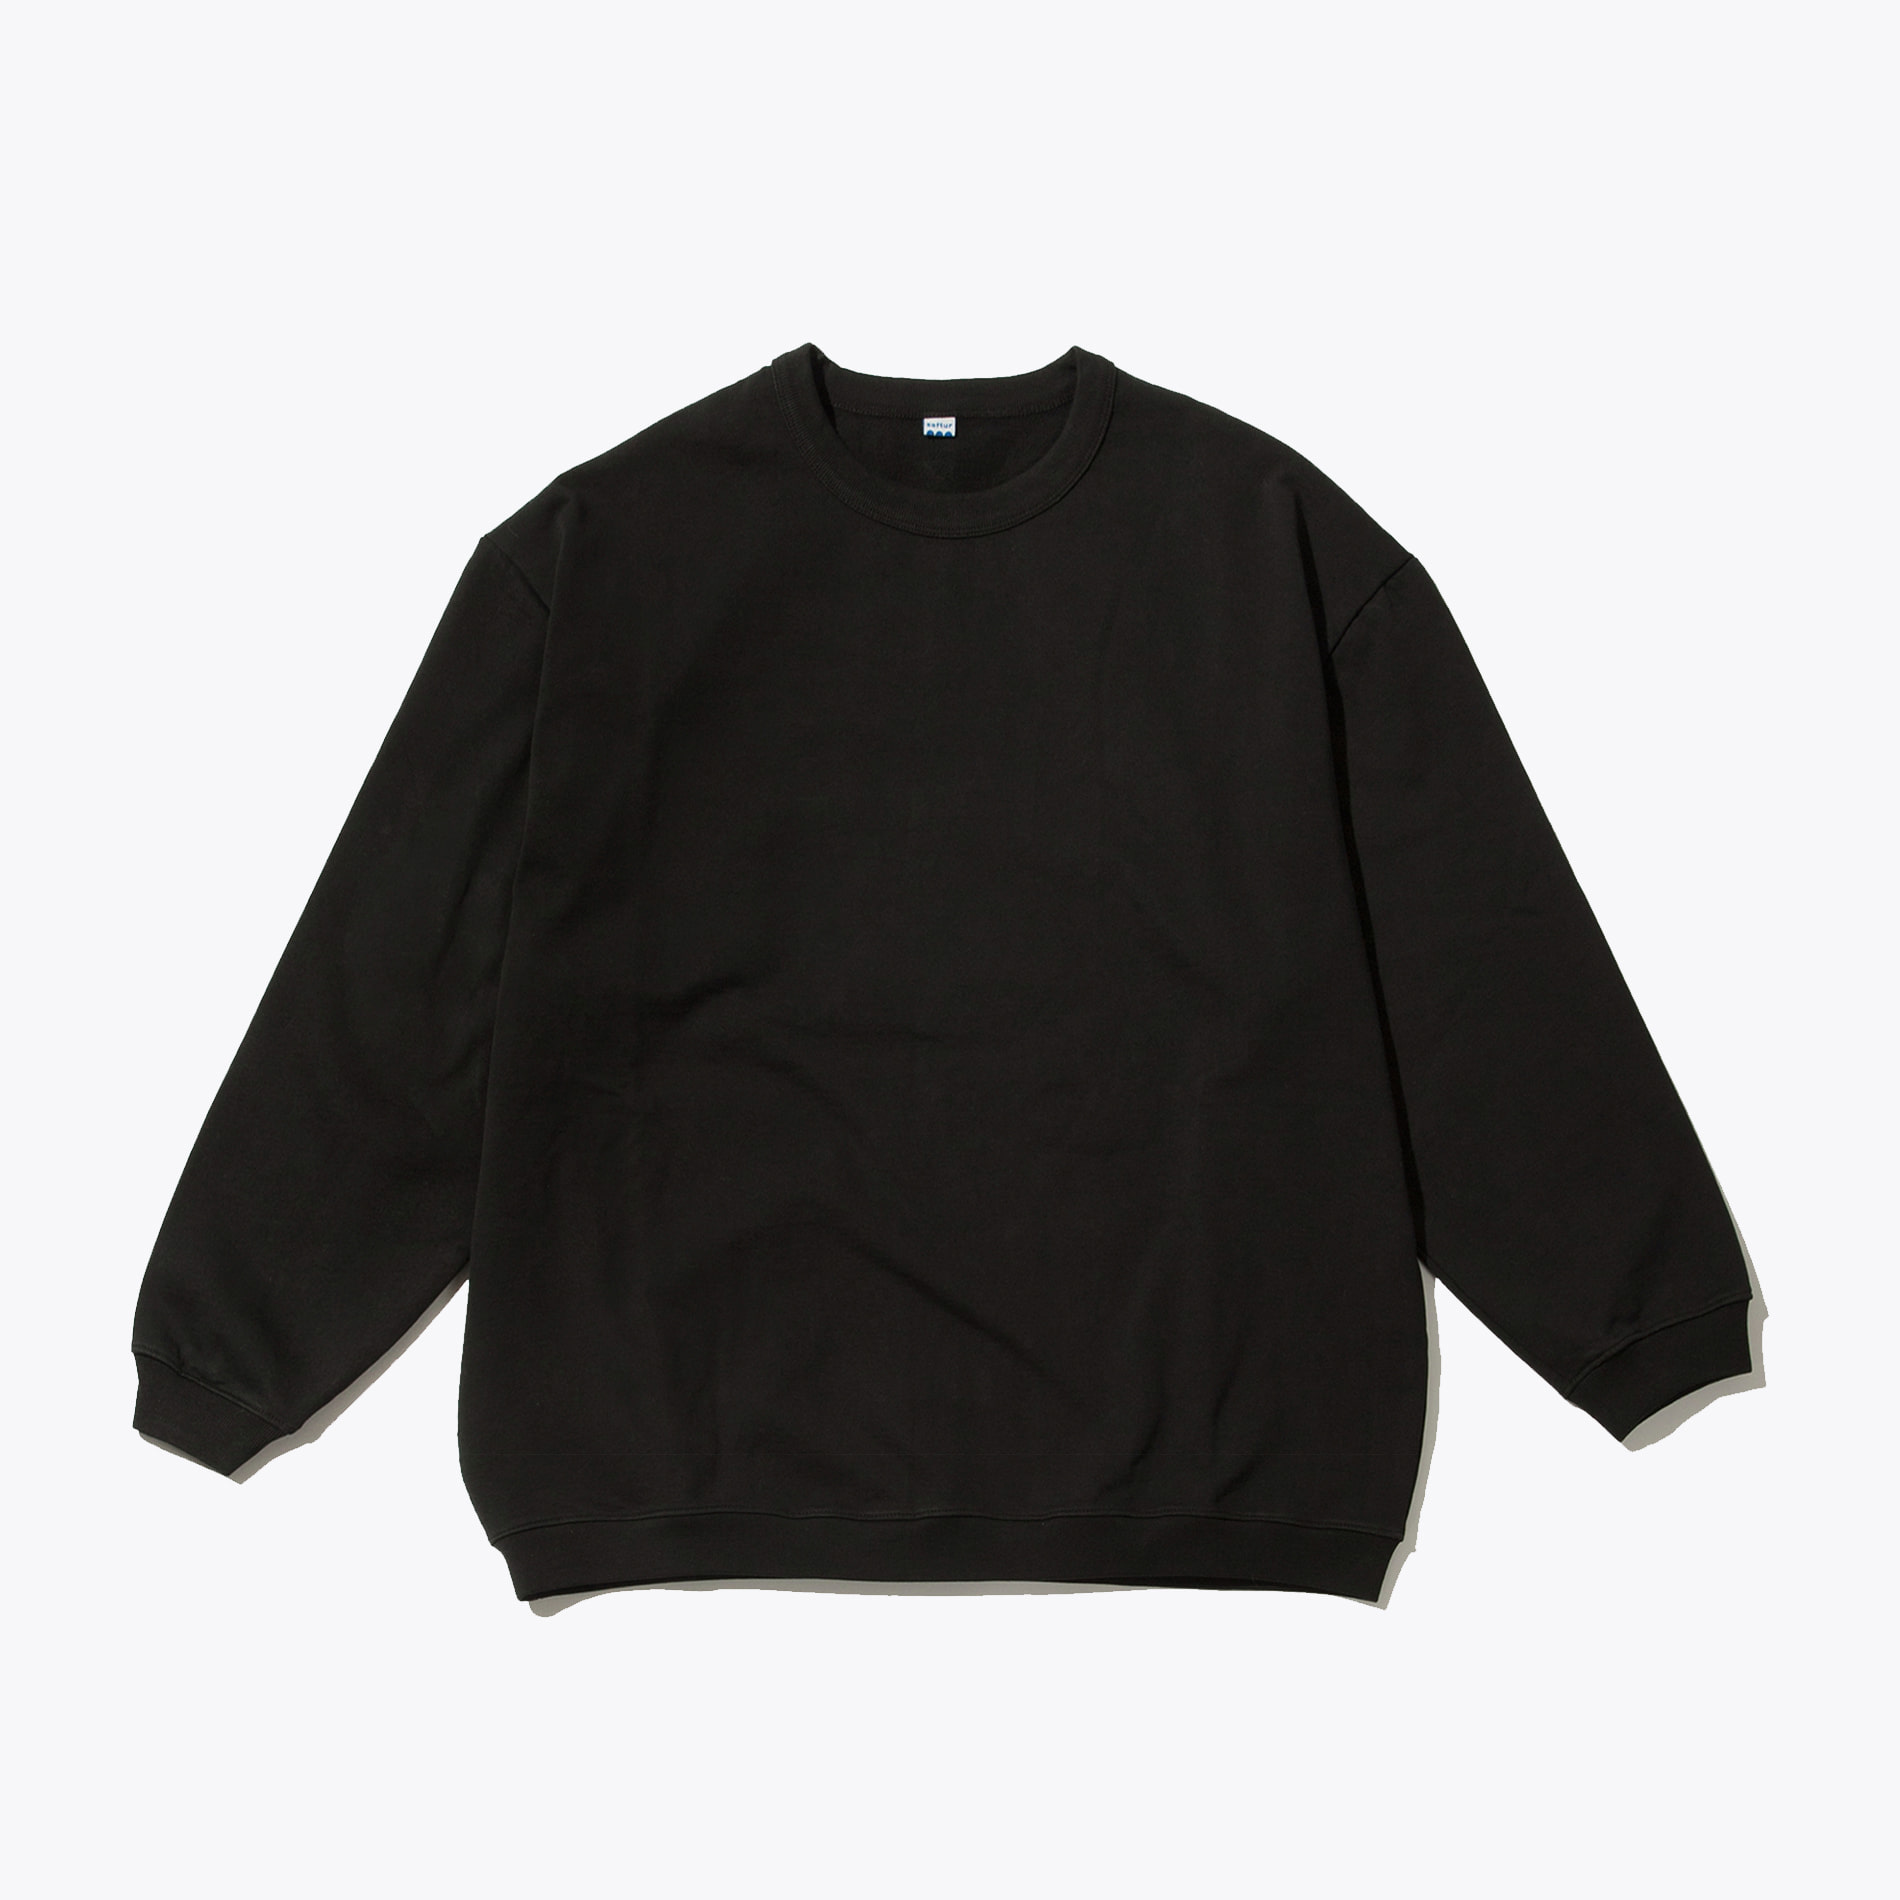 BAGGY SWEATSHIRT BLACK